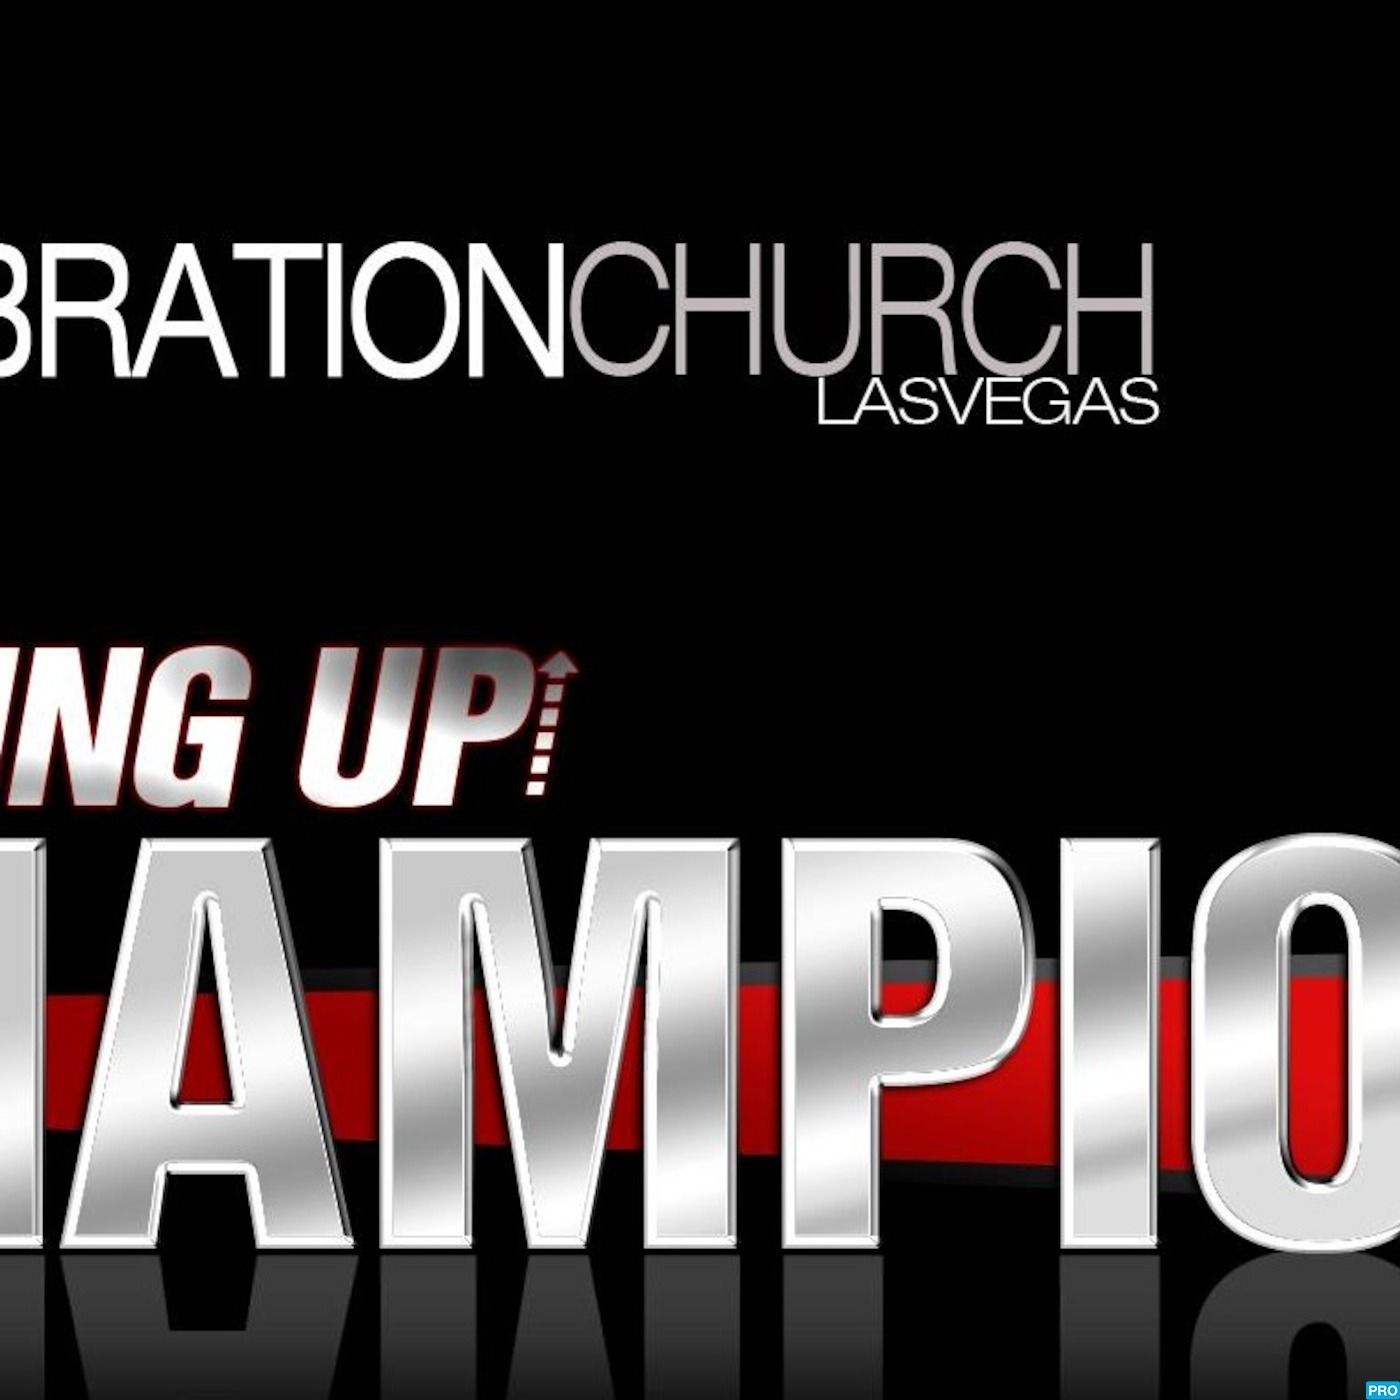 Celebration Church Las Vegas' Podcast